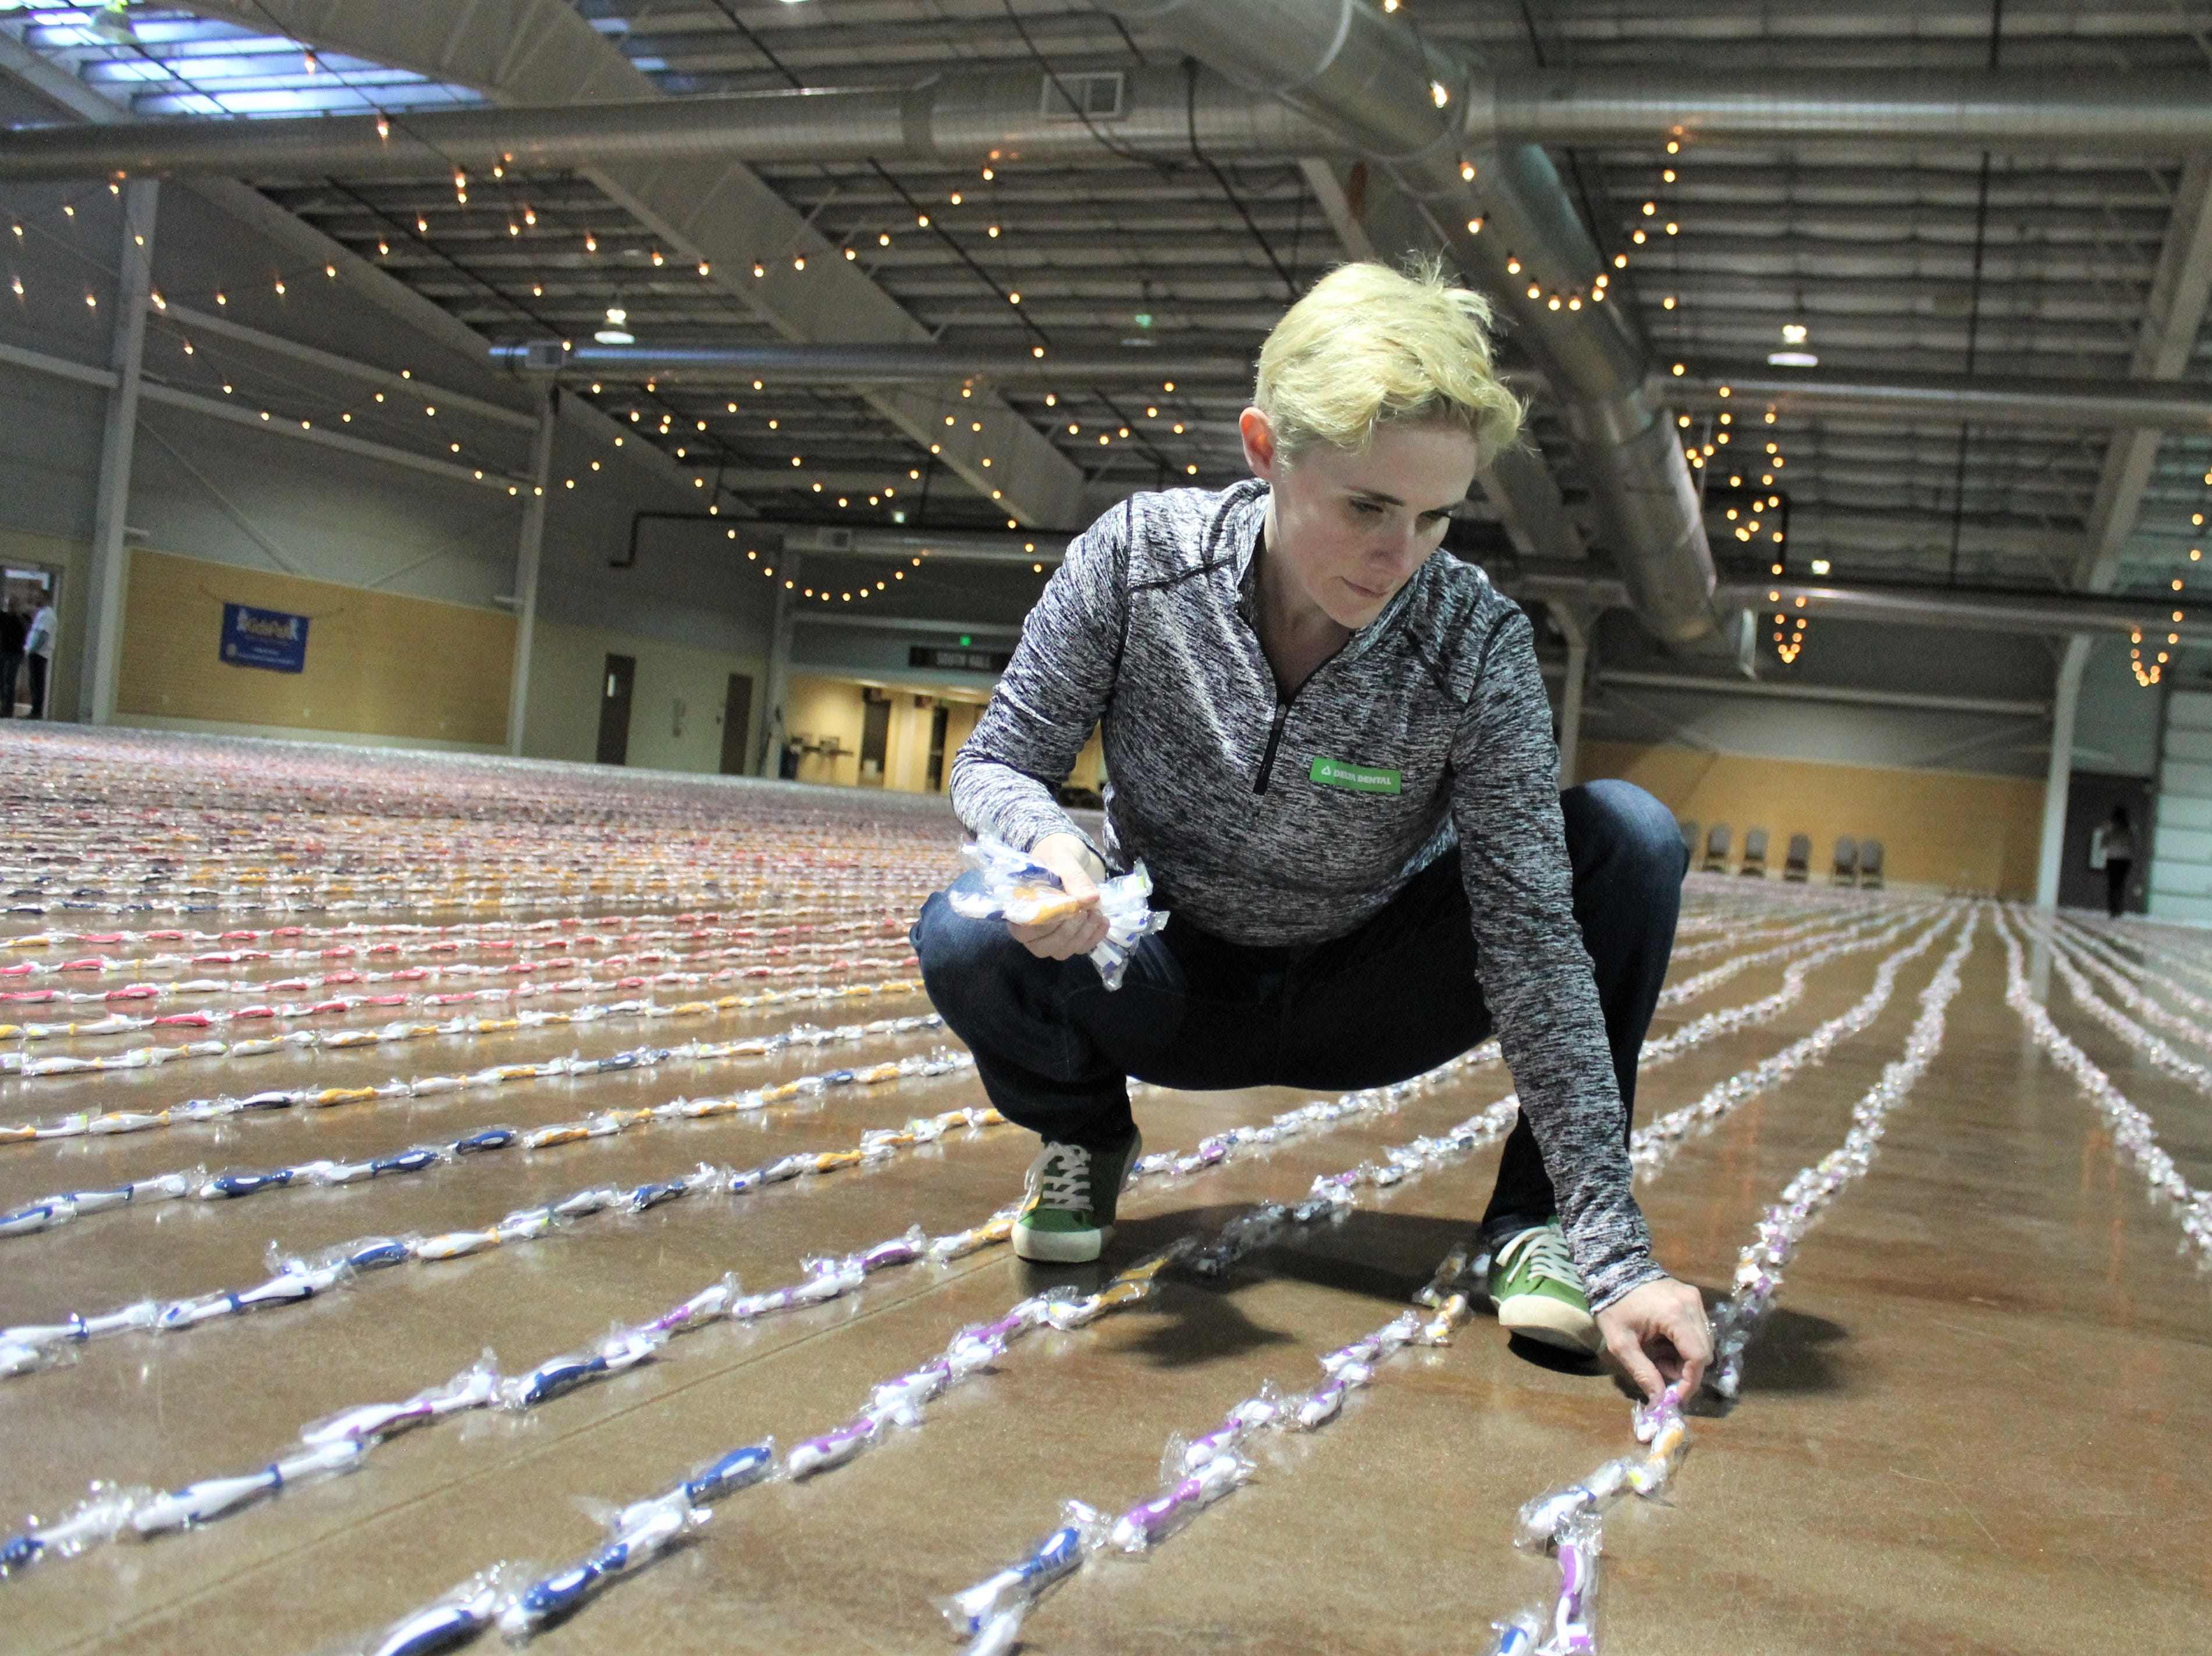 Andrea Miller works to straighten out a line of toothbrushes Feb. 26, 2019 at The Ranch Event Complex in Loveland. She, along with about 60 other volunteers, came together to break the Guinness World Record for most toothbrushes organized in a continuous line. The organizer, Change Gangs: Virtual Giving Circles will donate about 55,000 toothbrushes to kids in need across Colorado.